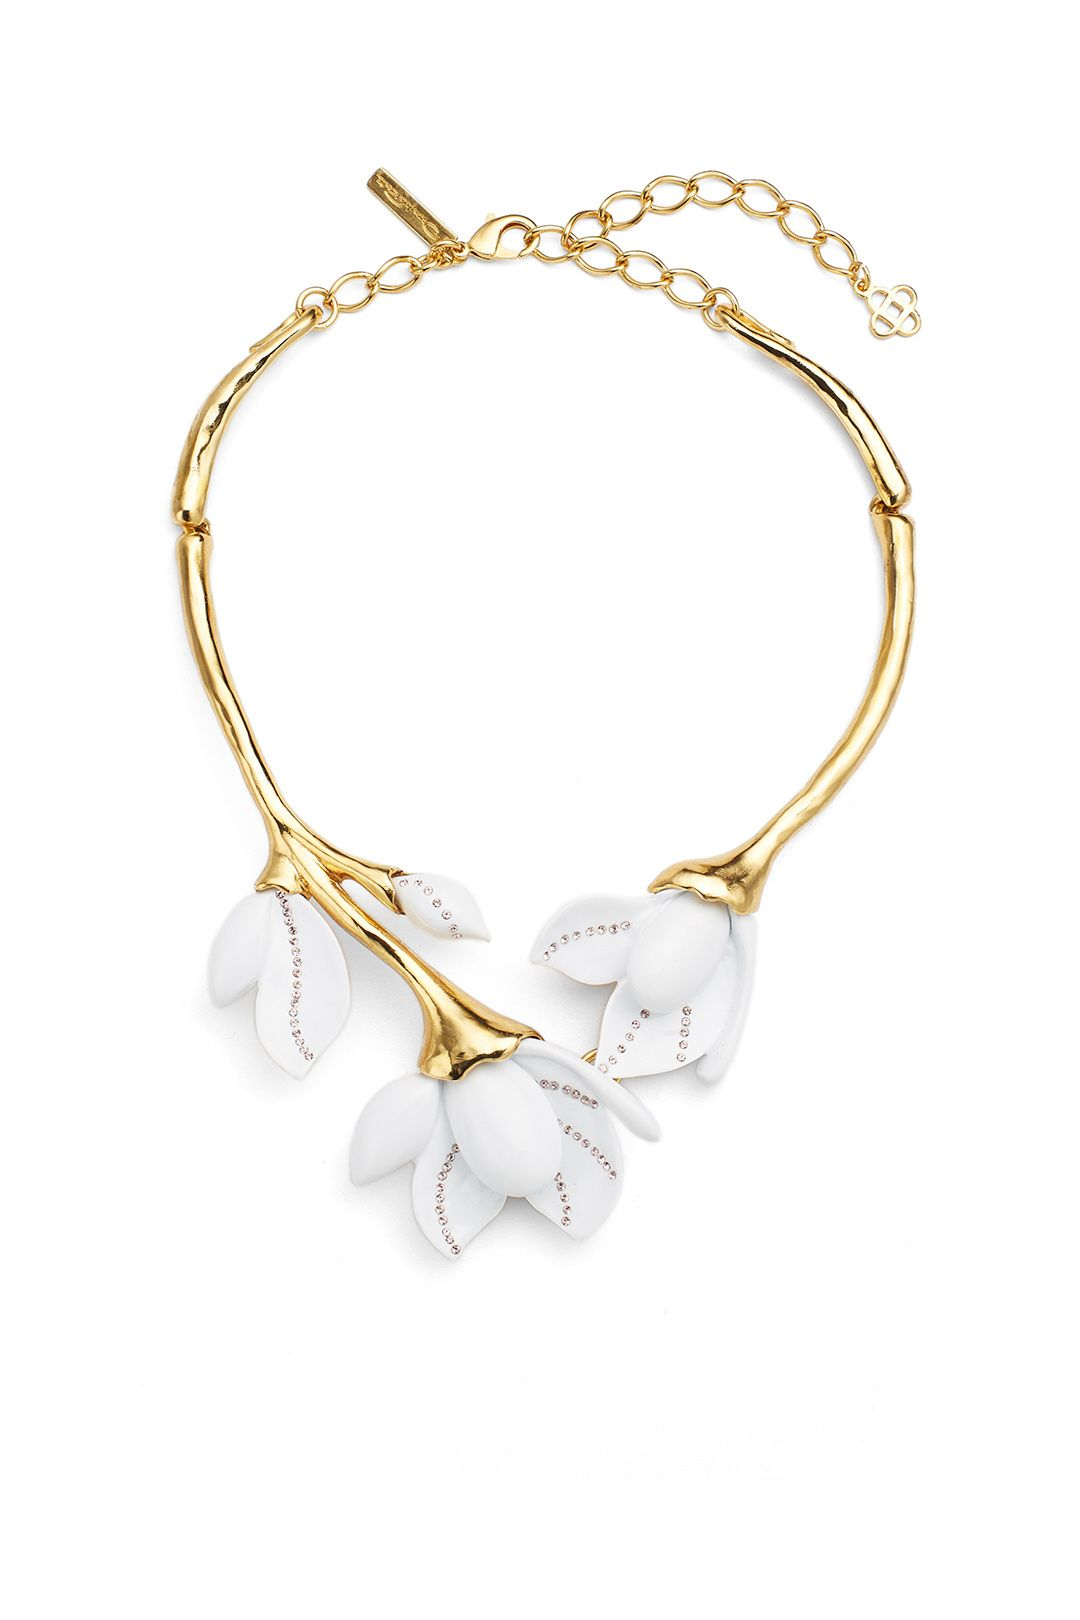 1903e5b3f Rent Magnolia Resin Flower Necklace by Oscar de la Renta for $100 only at  Rent the Runway.